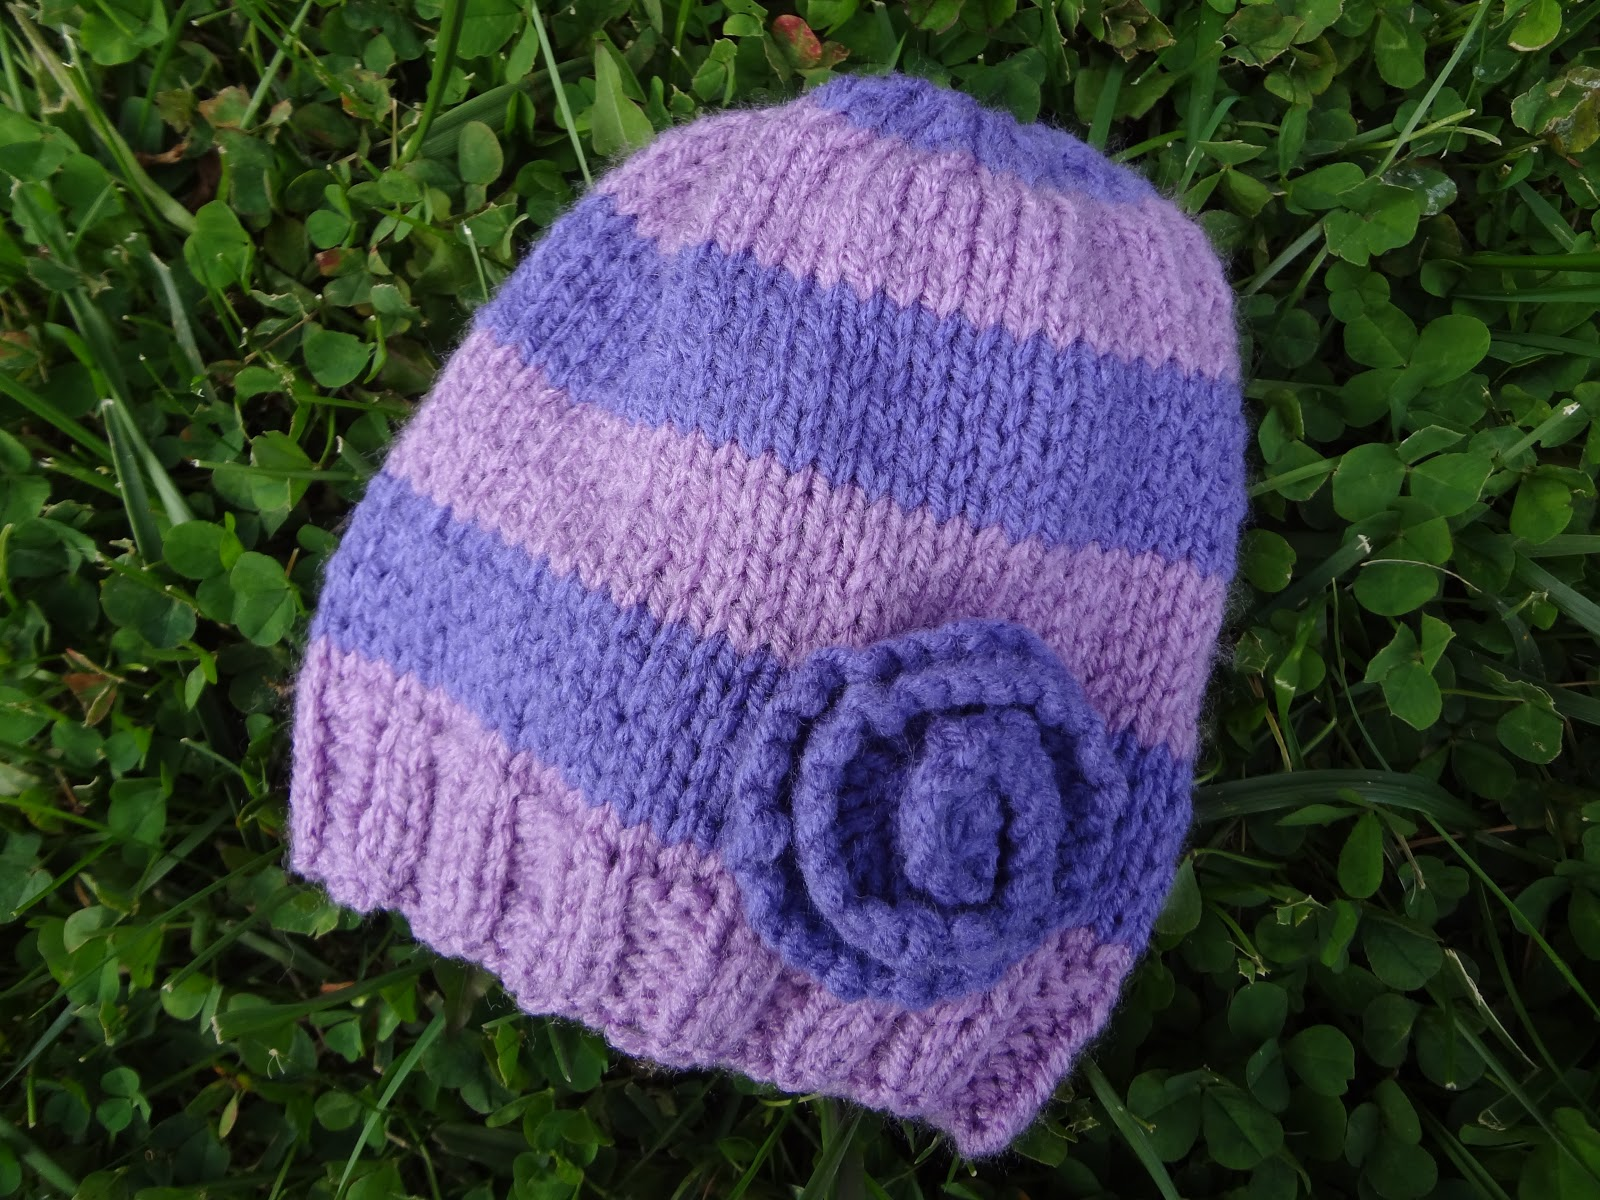 Knit Pattern For Baby Hat : Fiber Flux: Free Knitting Pattern...Very Violet Newborn Hat!